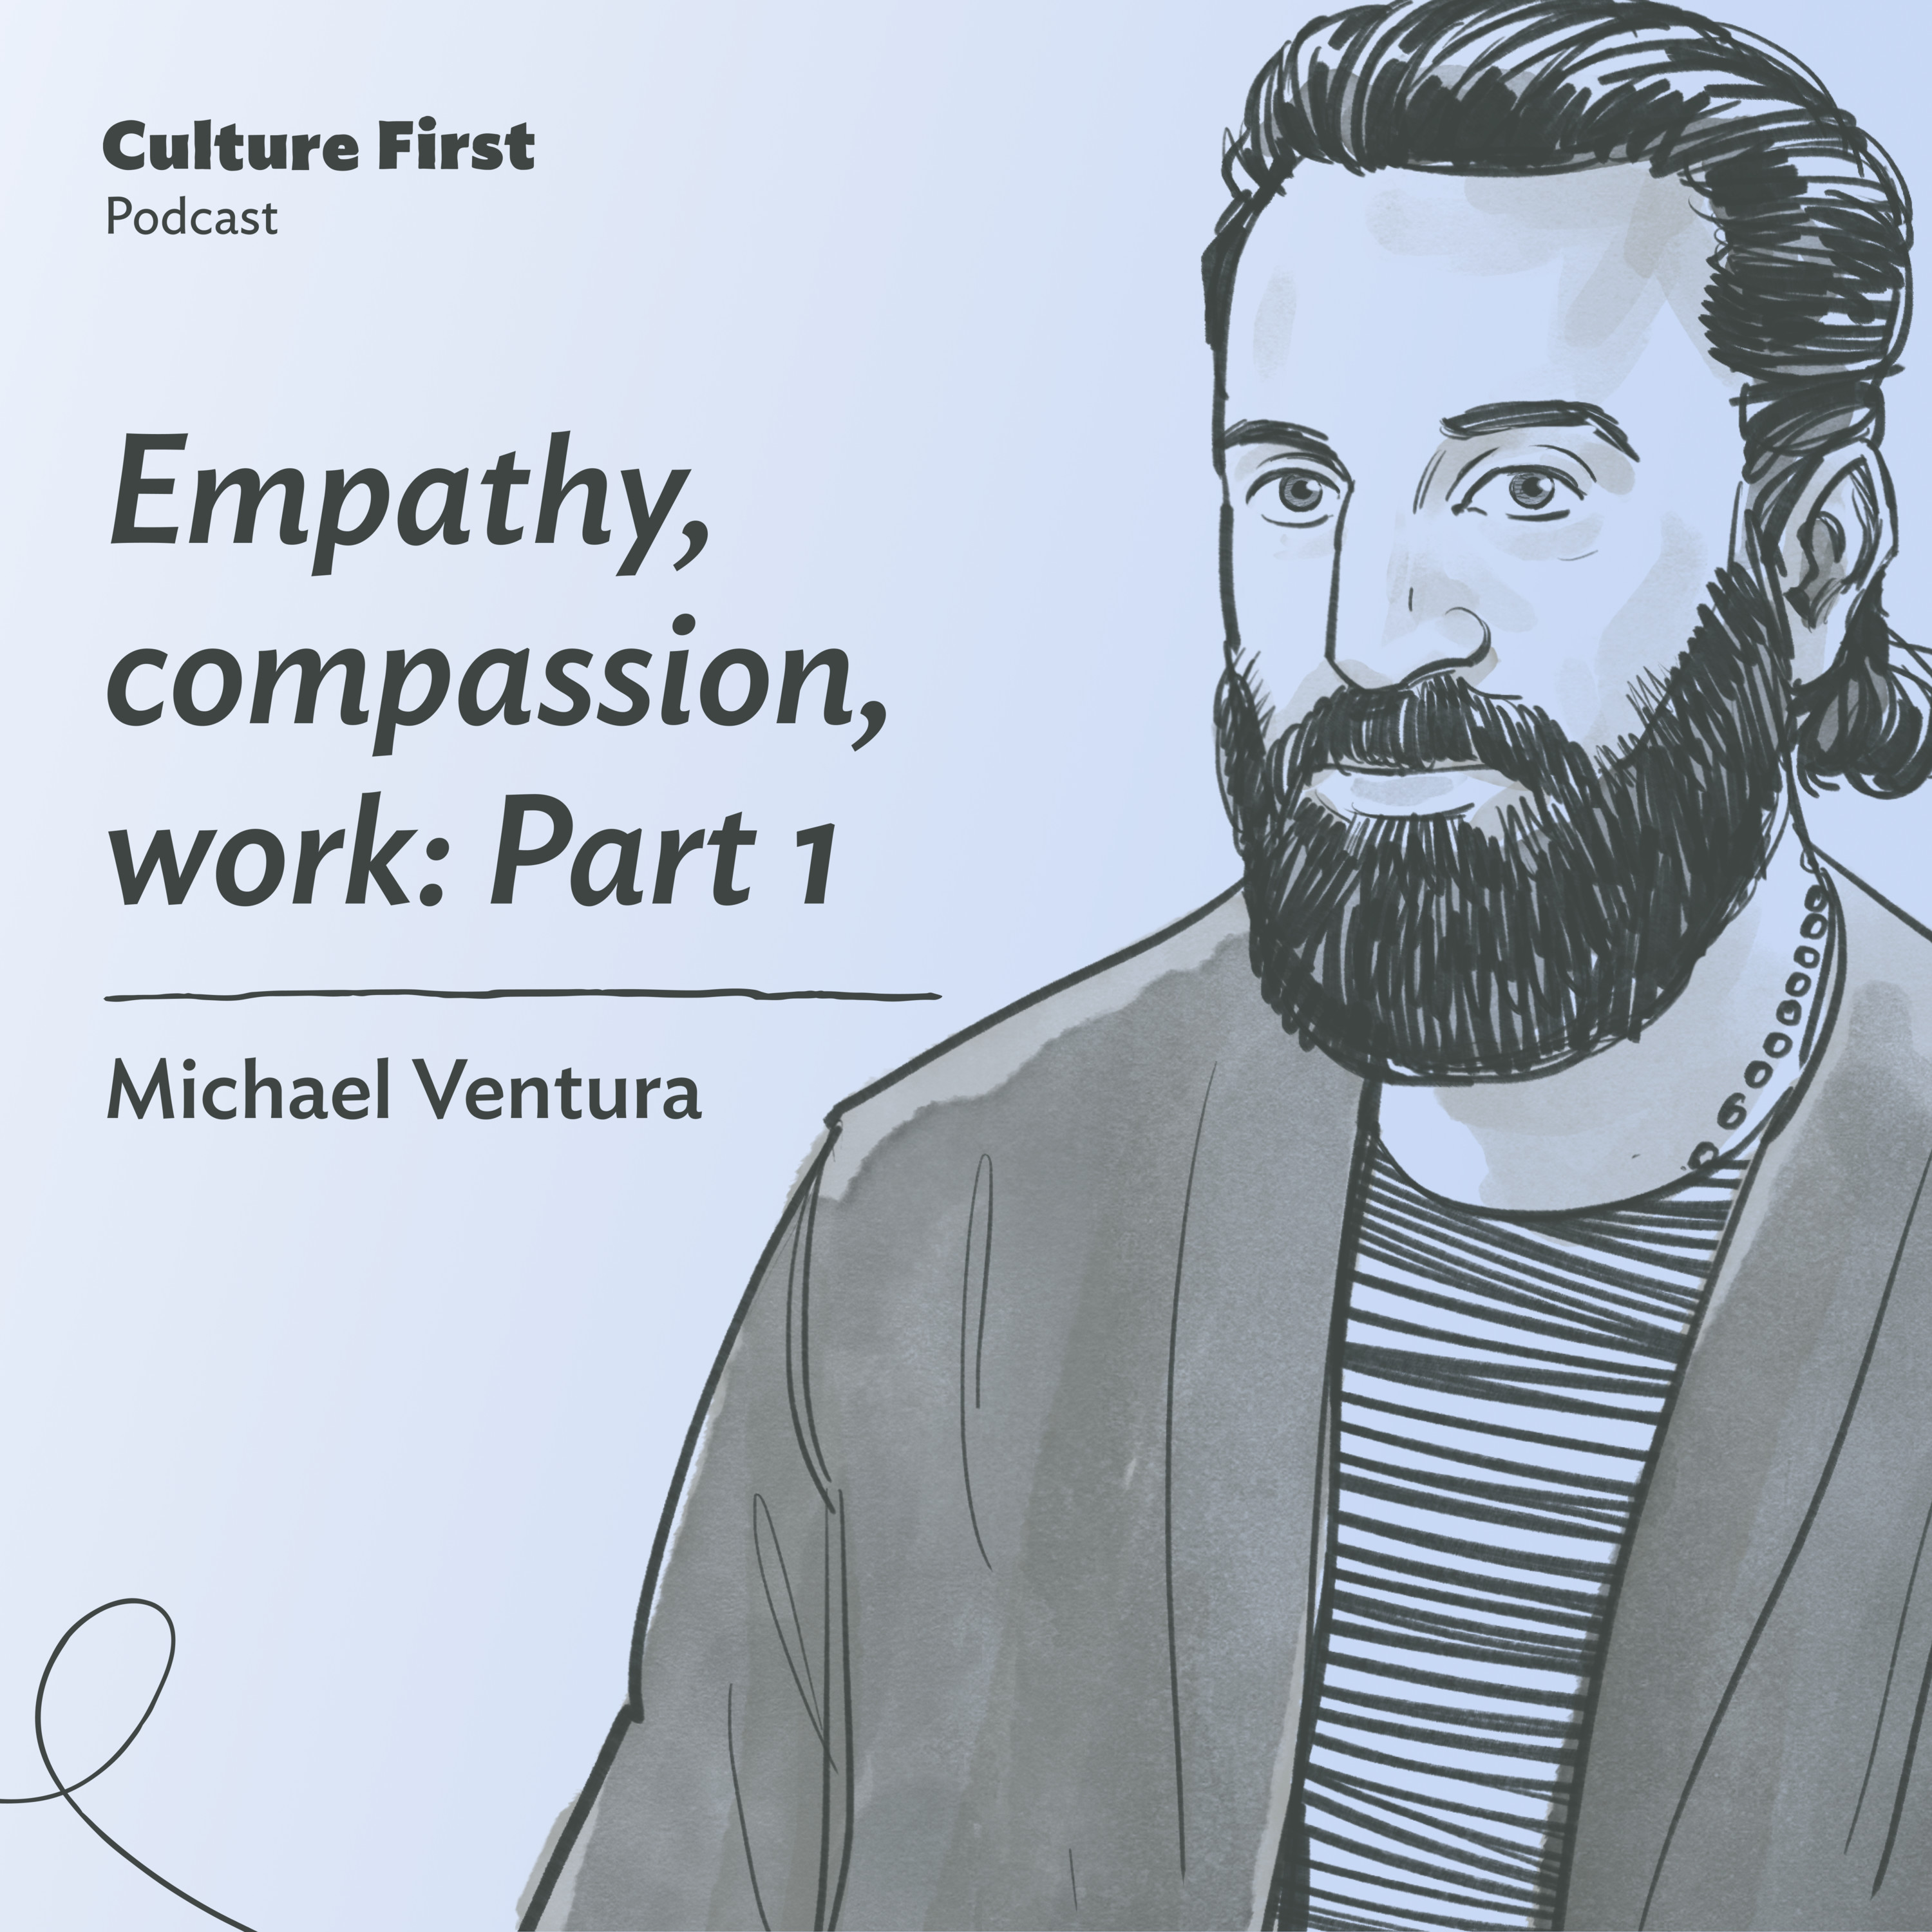 Empathy, compassion, work: Part 1, with Michael Ventura